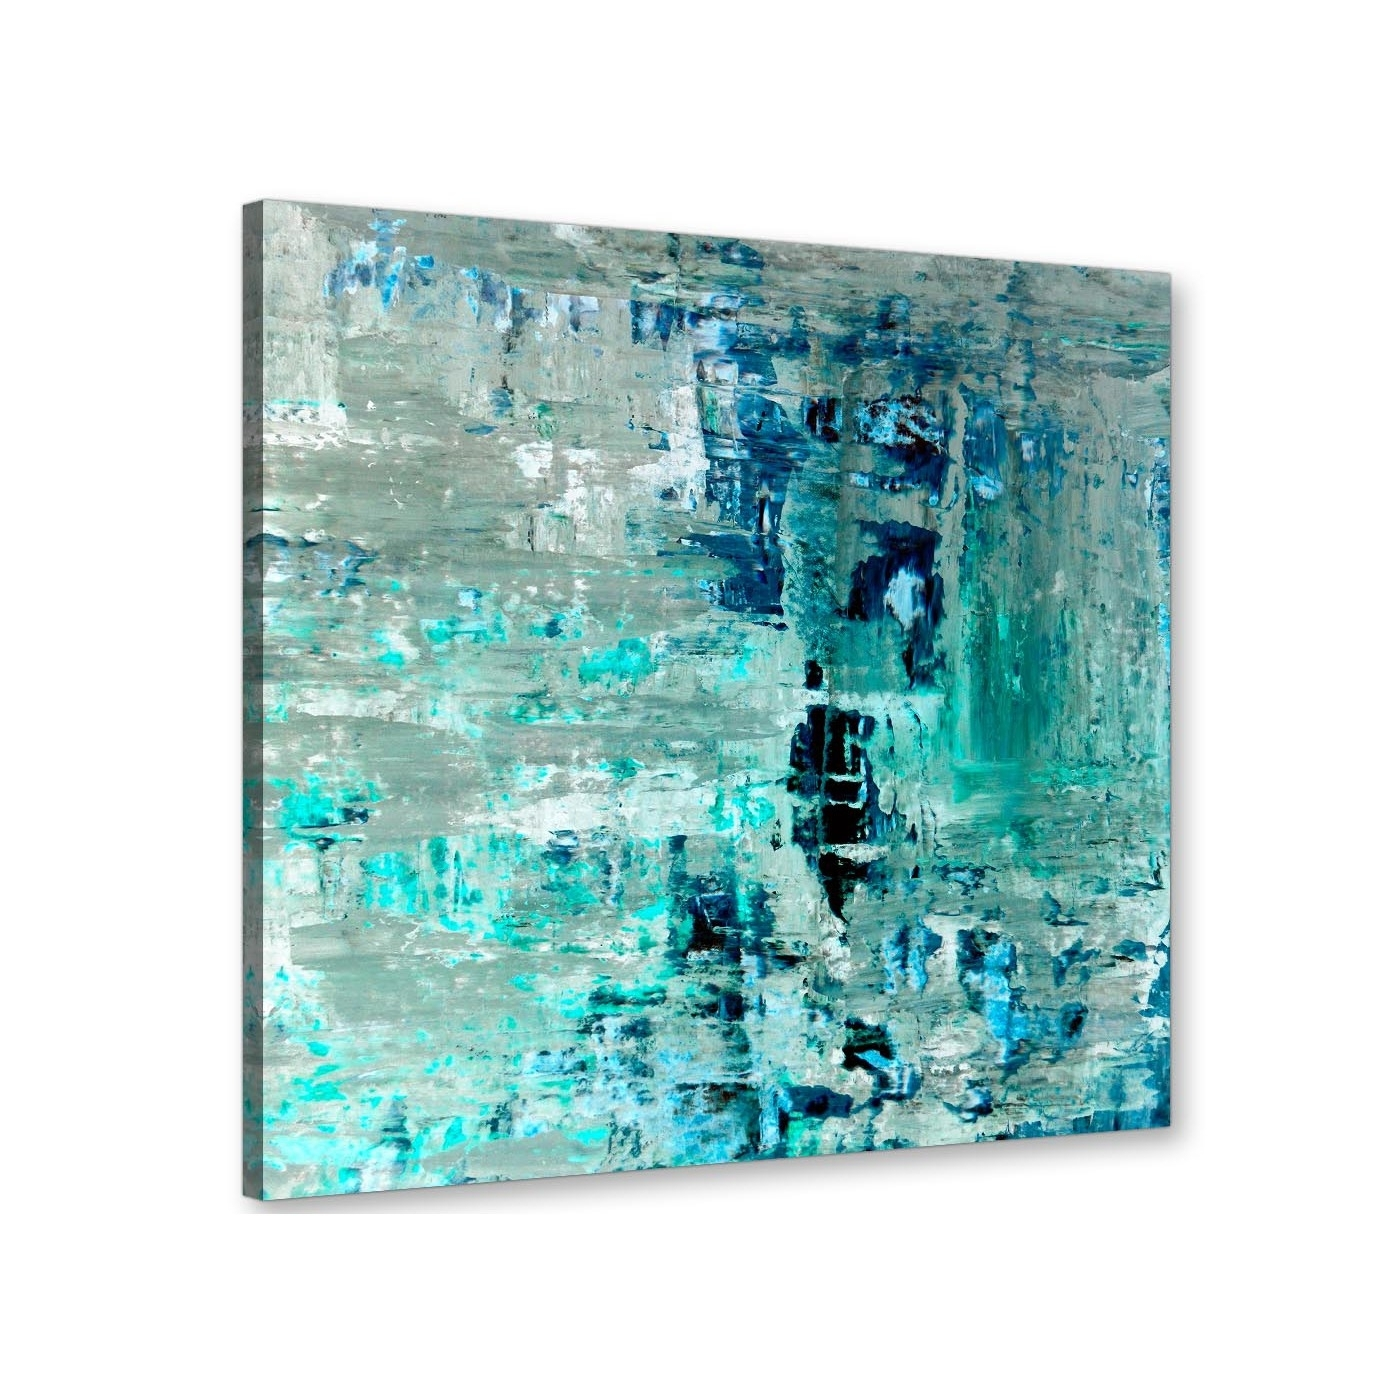 Turquoise Teal Abstract Painting Wall Art Print Canvas – Modern 79cm Inside Best And Newest Turquoise Wall Art (View 3 of 20)